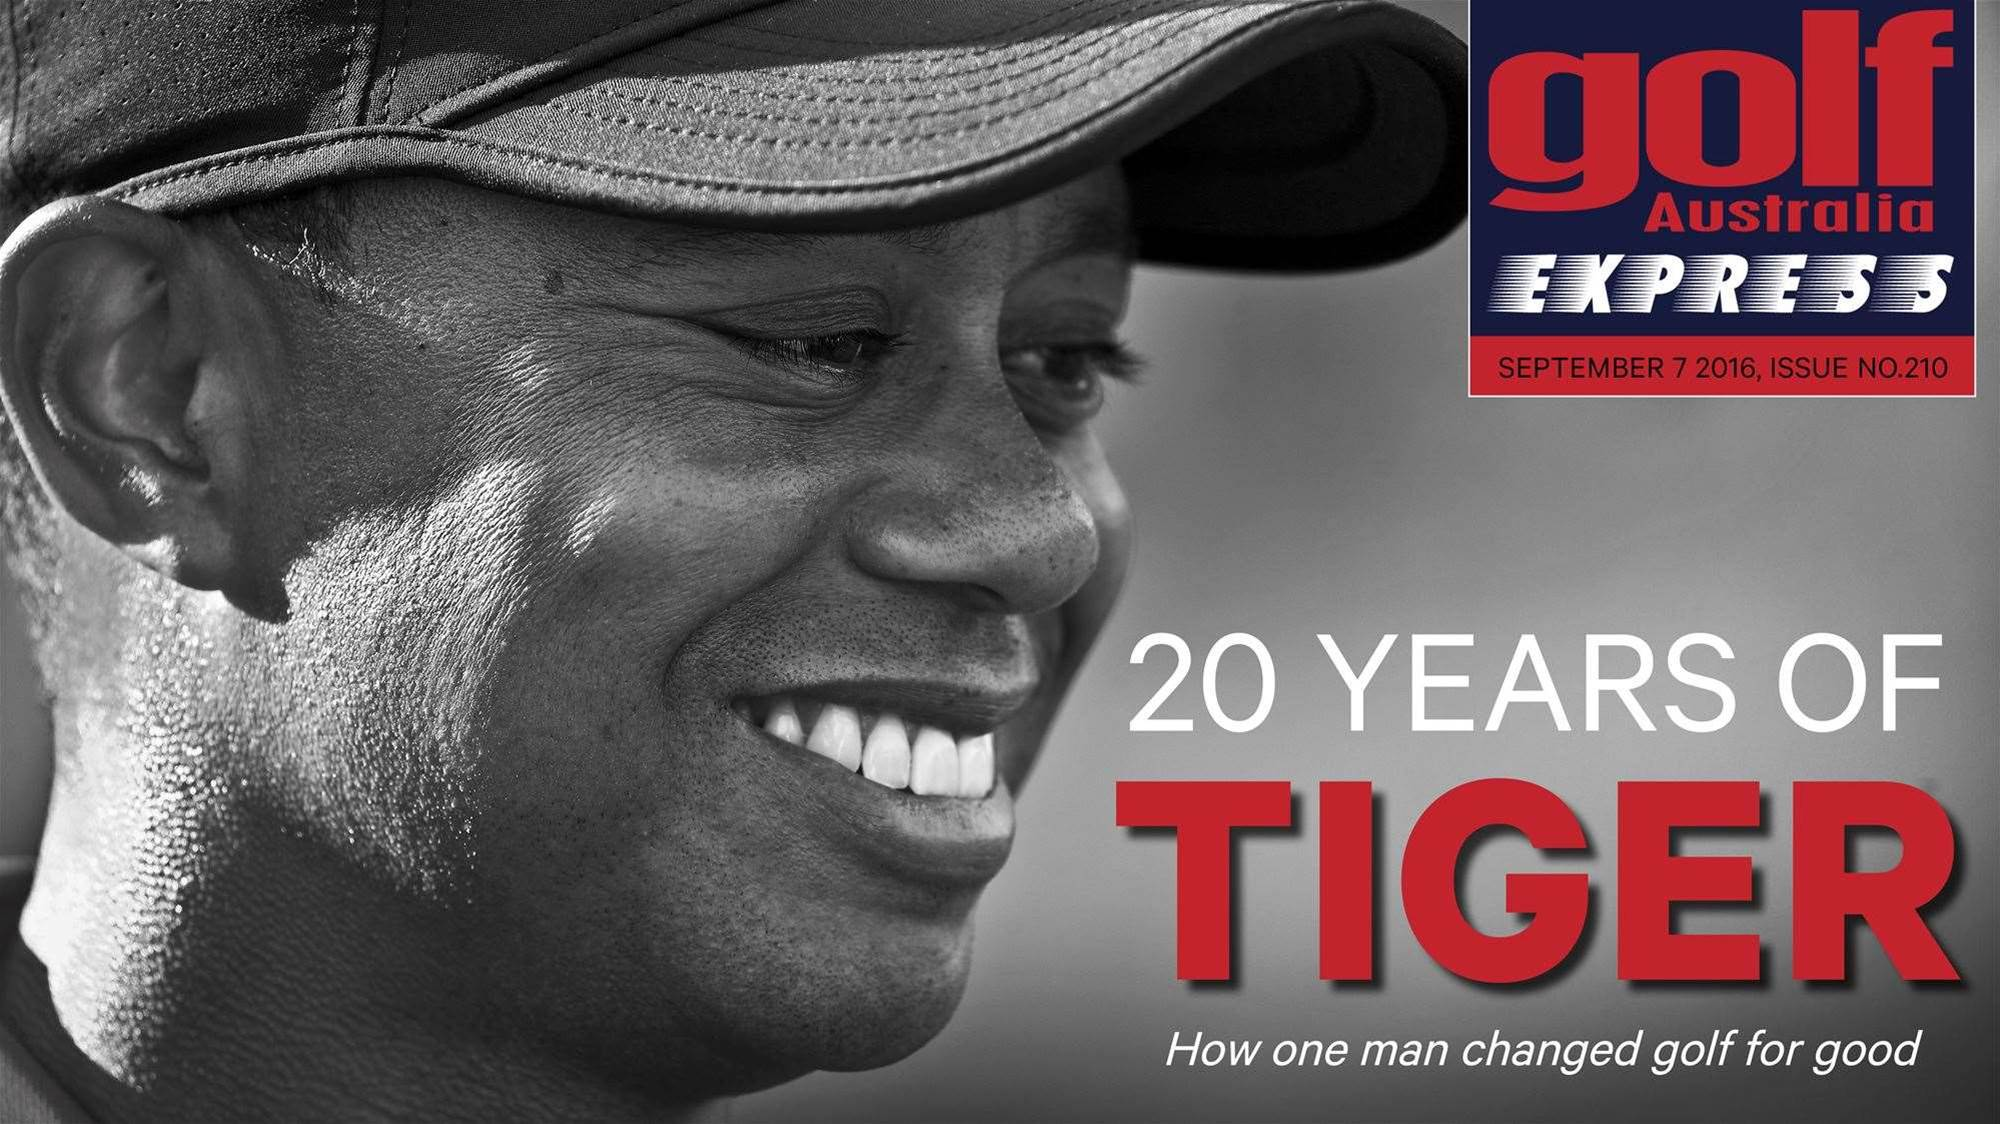 GA Express Issue 210: 20 Years of Tiger